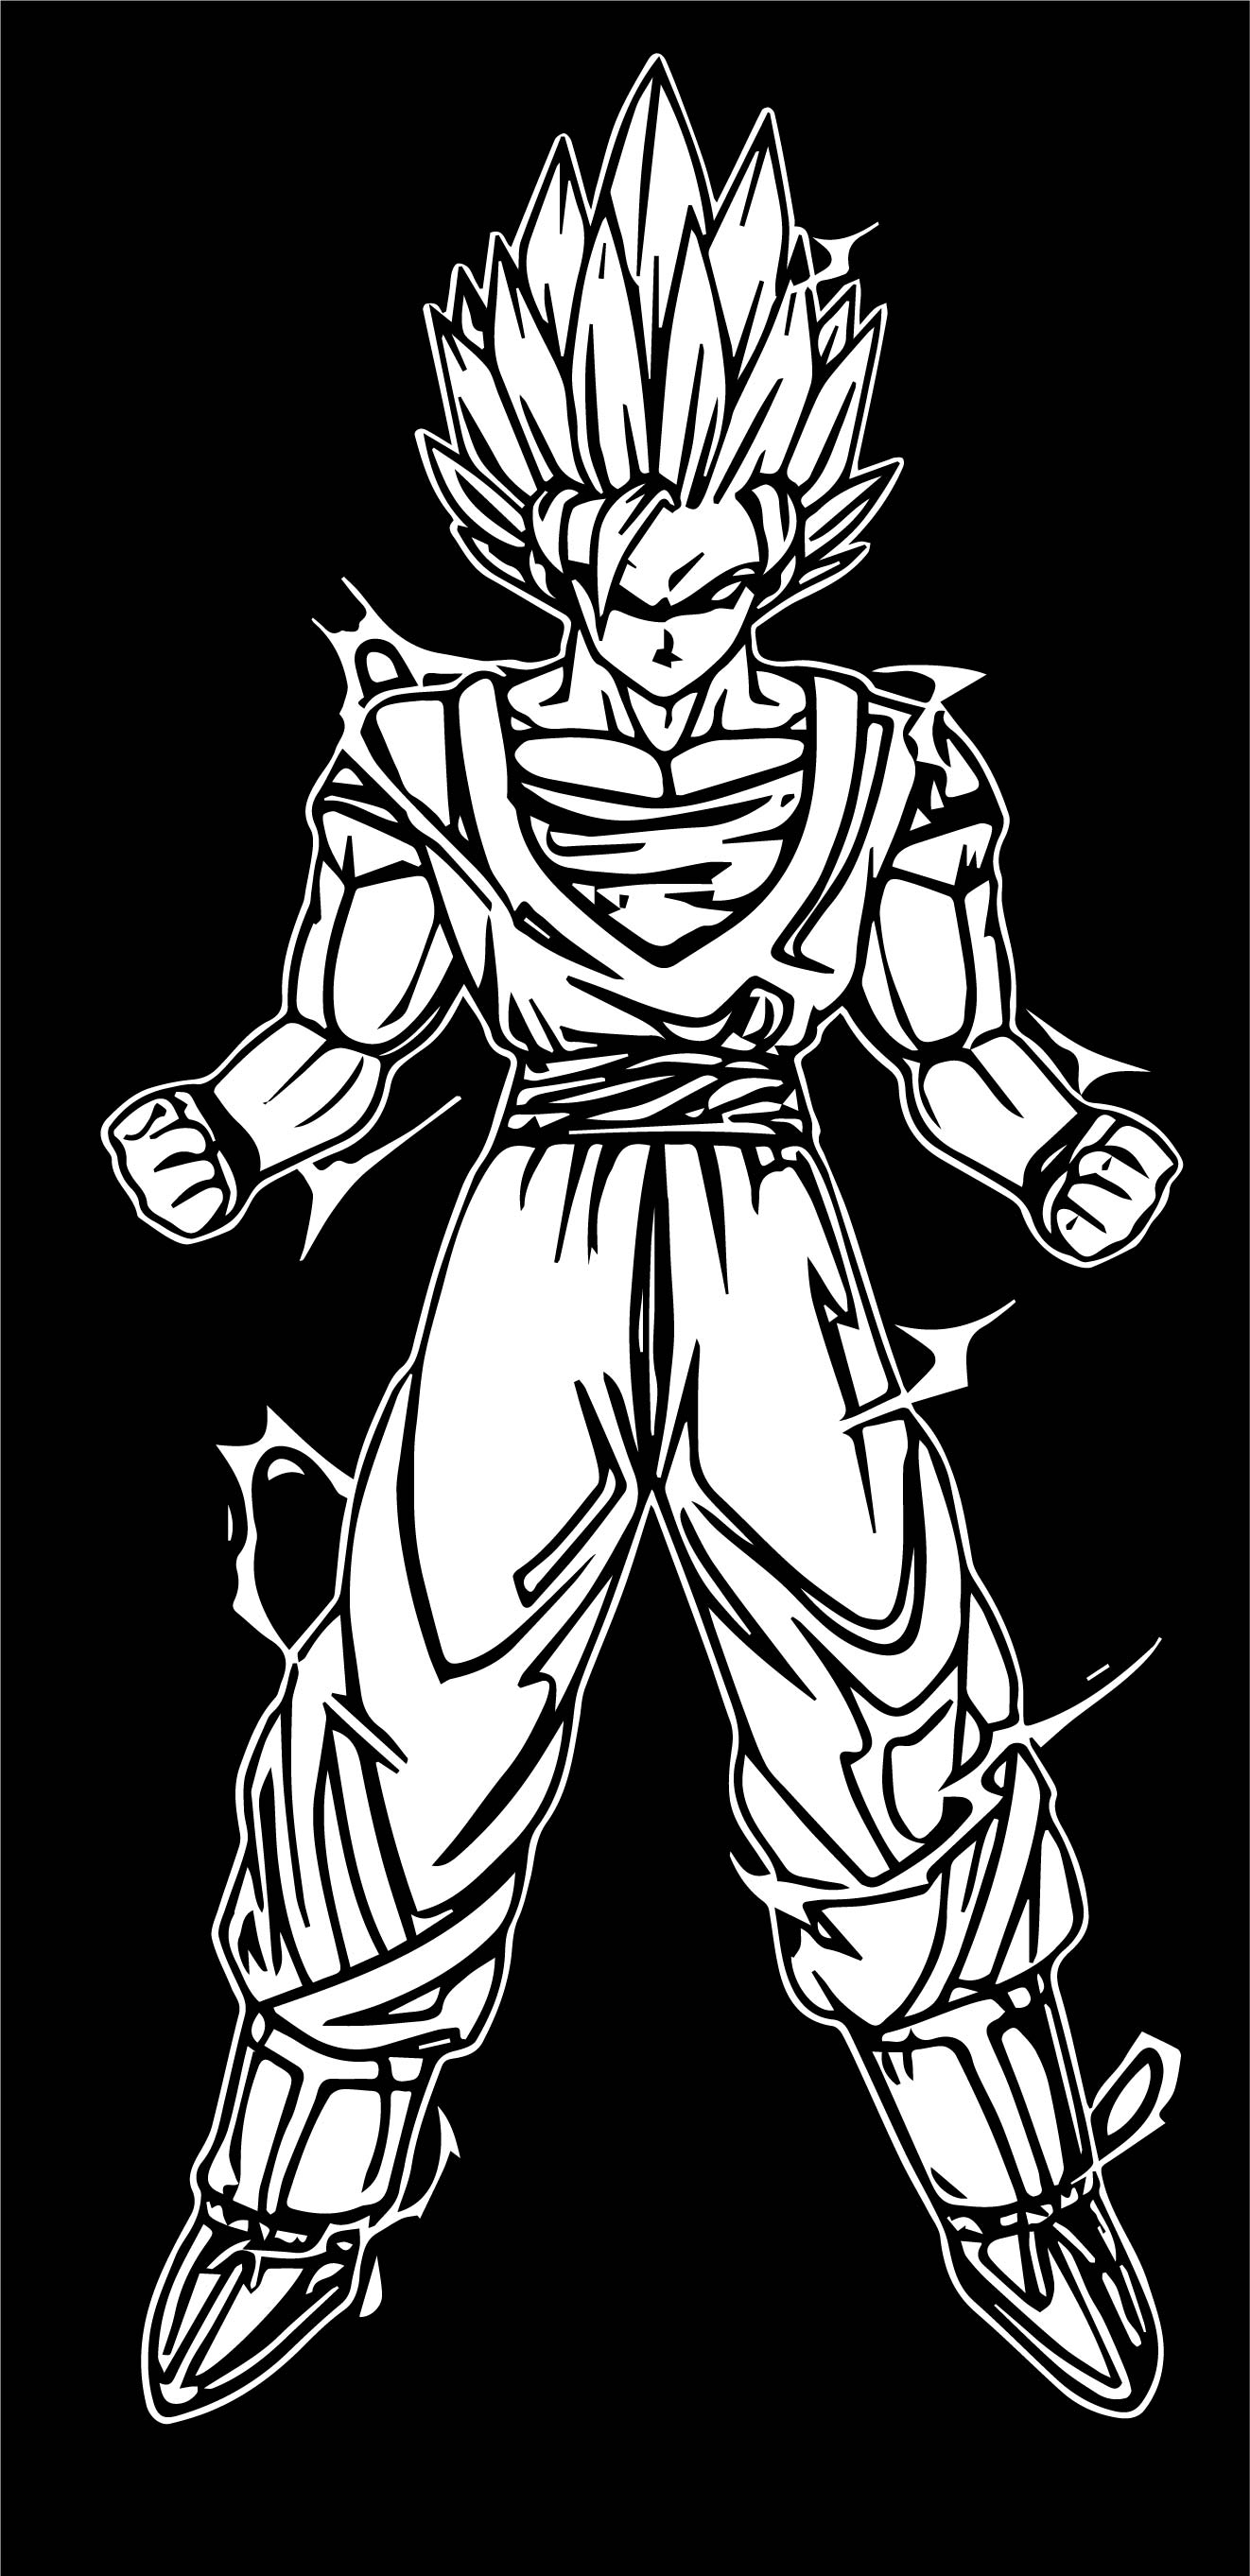 Goku Black Background Coloring Page